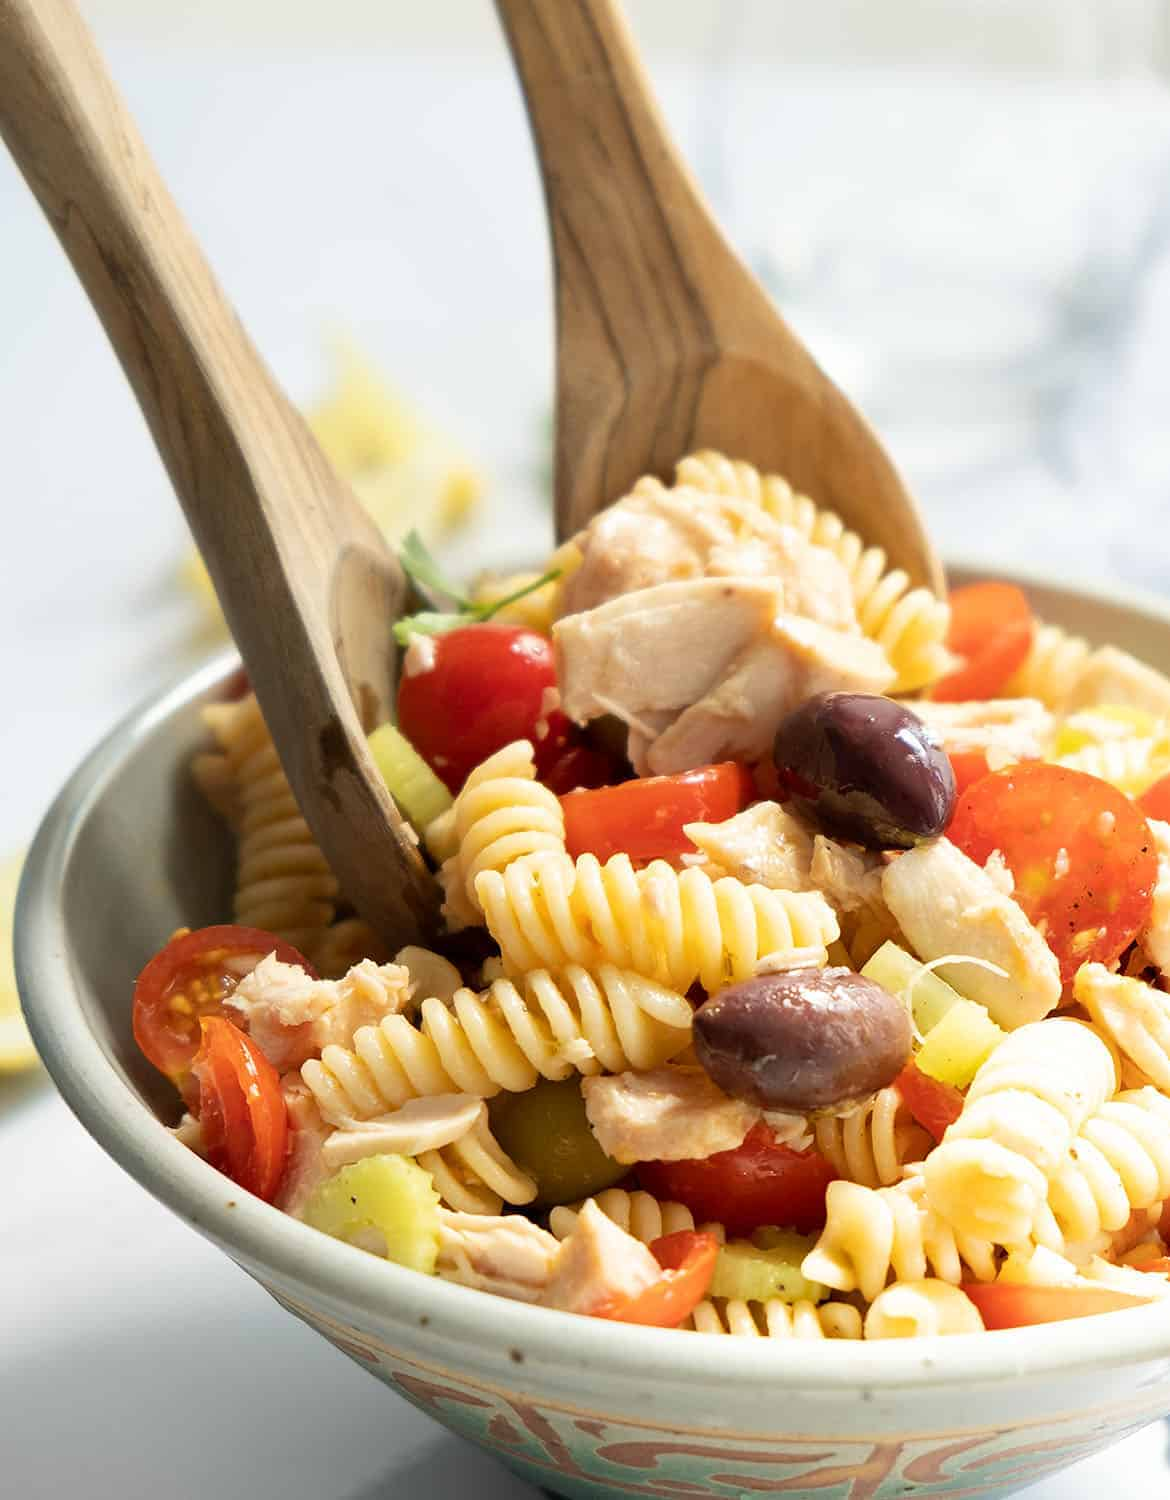 Two wooden spoons are mixing the tuna pasta salad in a bowl.